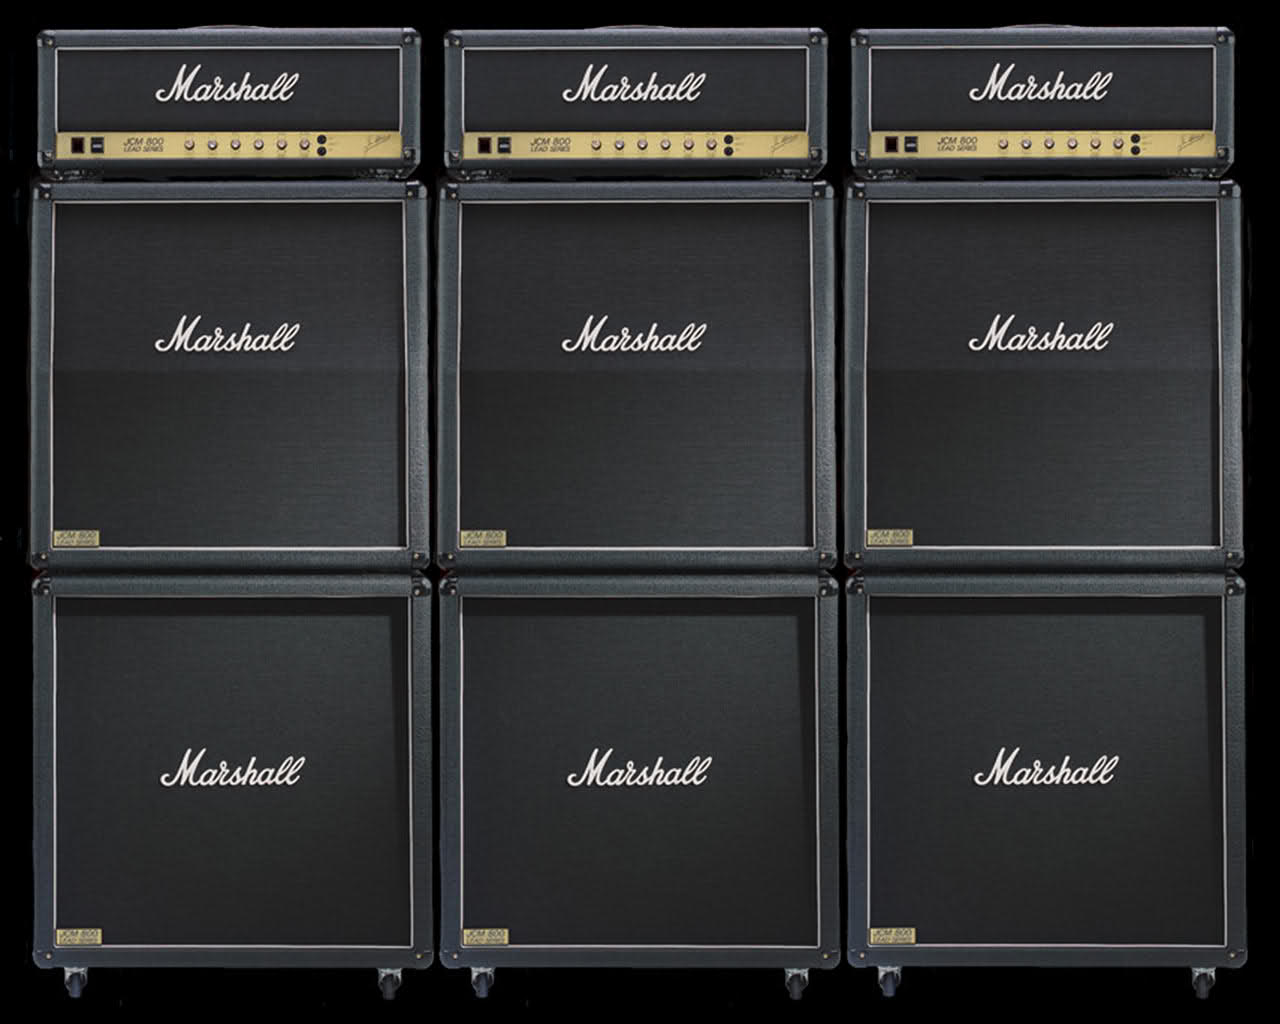 Marshall Jcm 900 further Marshall Jcm800 2203 Vintage Series Guitar Tube   Head in addition How Much   Power Do I Need furthermore Jim Marshall Rip additionally ECONOMICAL 20VALVE 20BASED 20AUDIO 20POWER 20 LIFIER. on marshall amplifiers